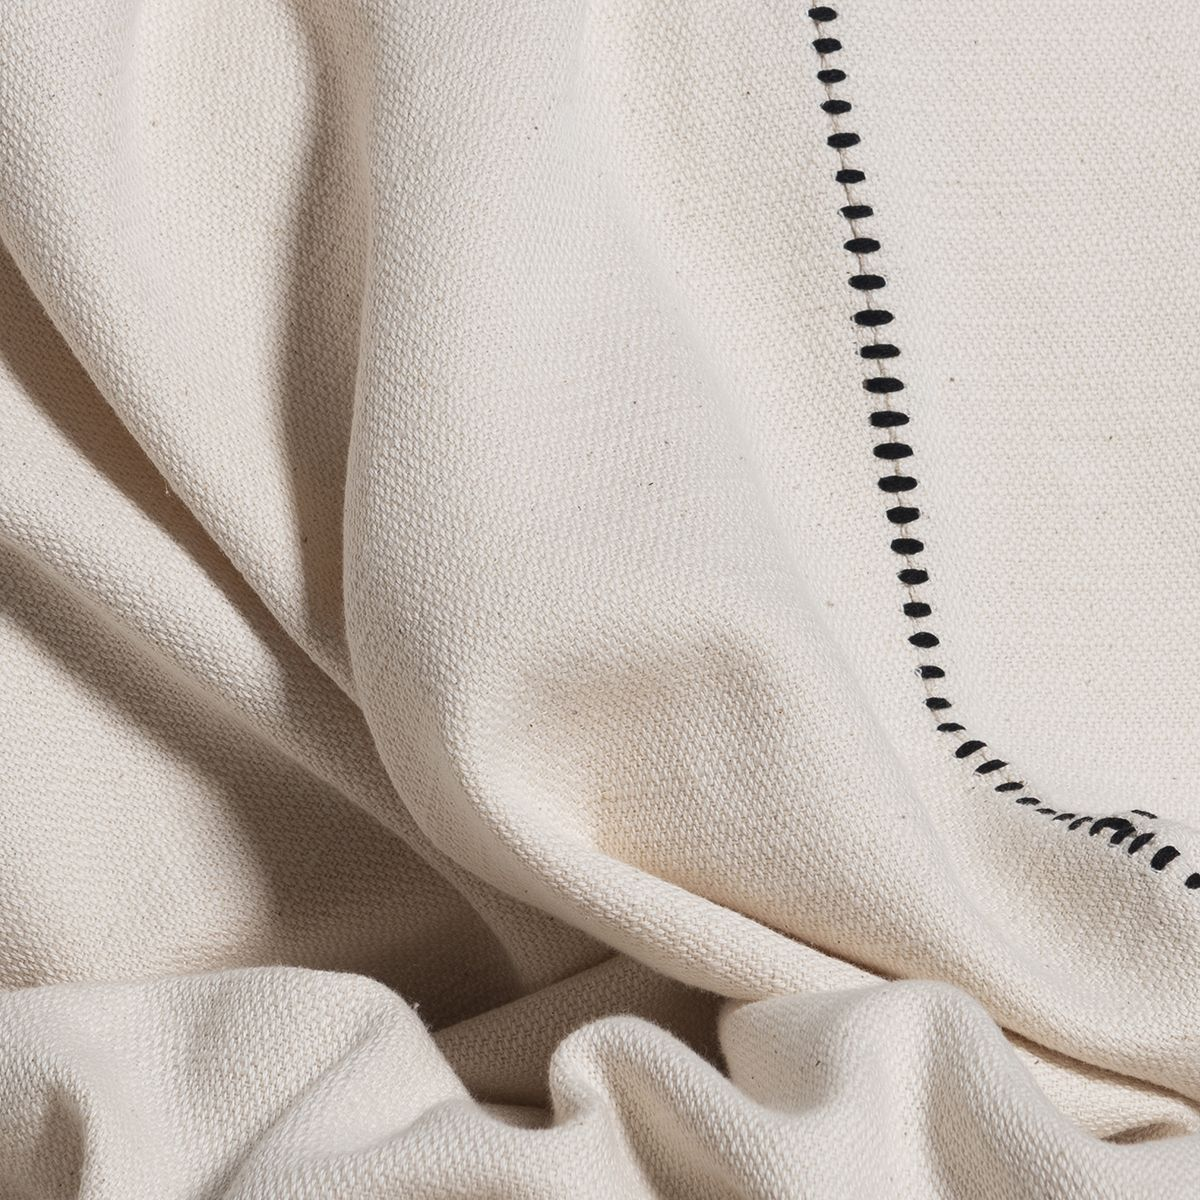 Throw / Patchwork - Unsymmetrical / Black Stitched